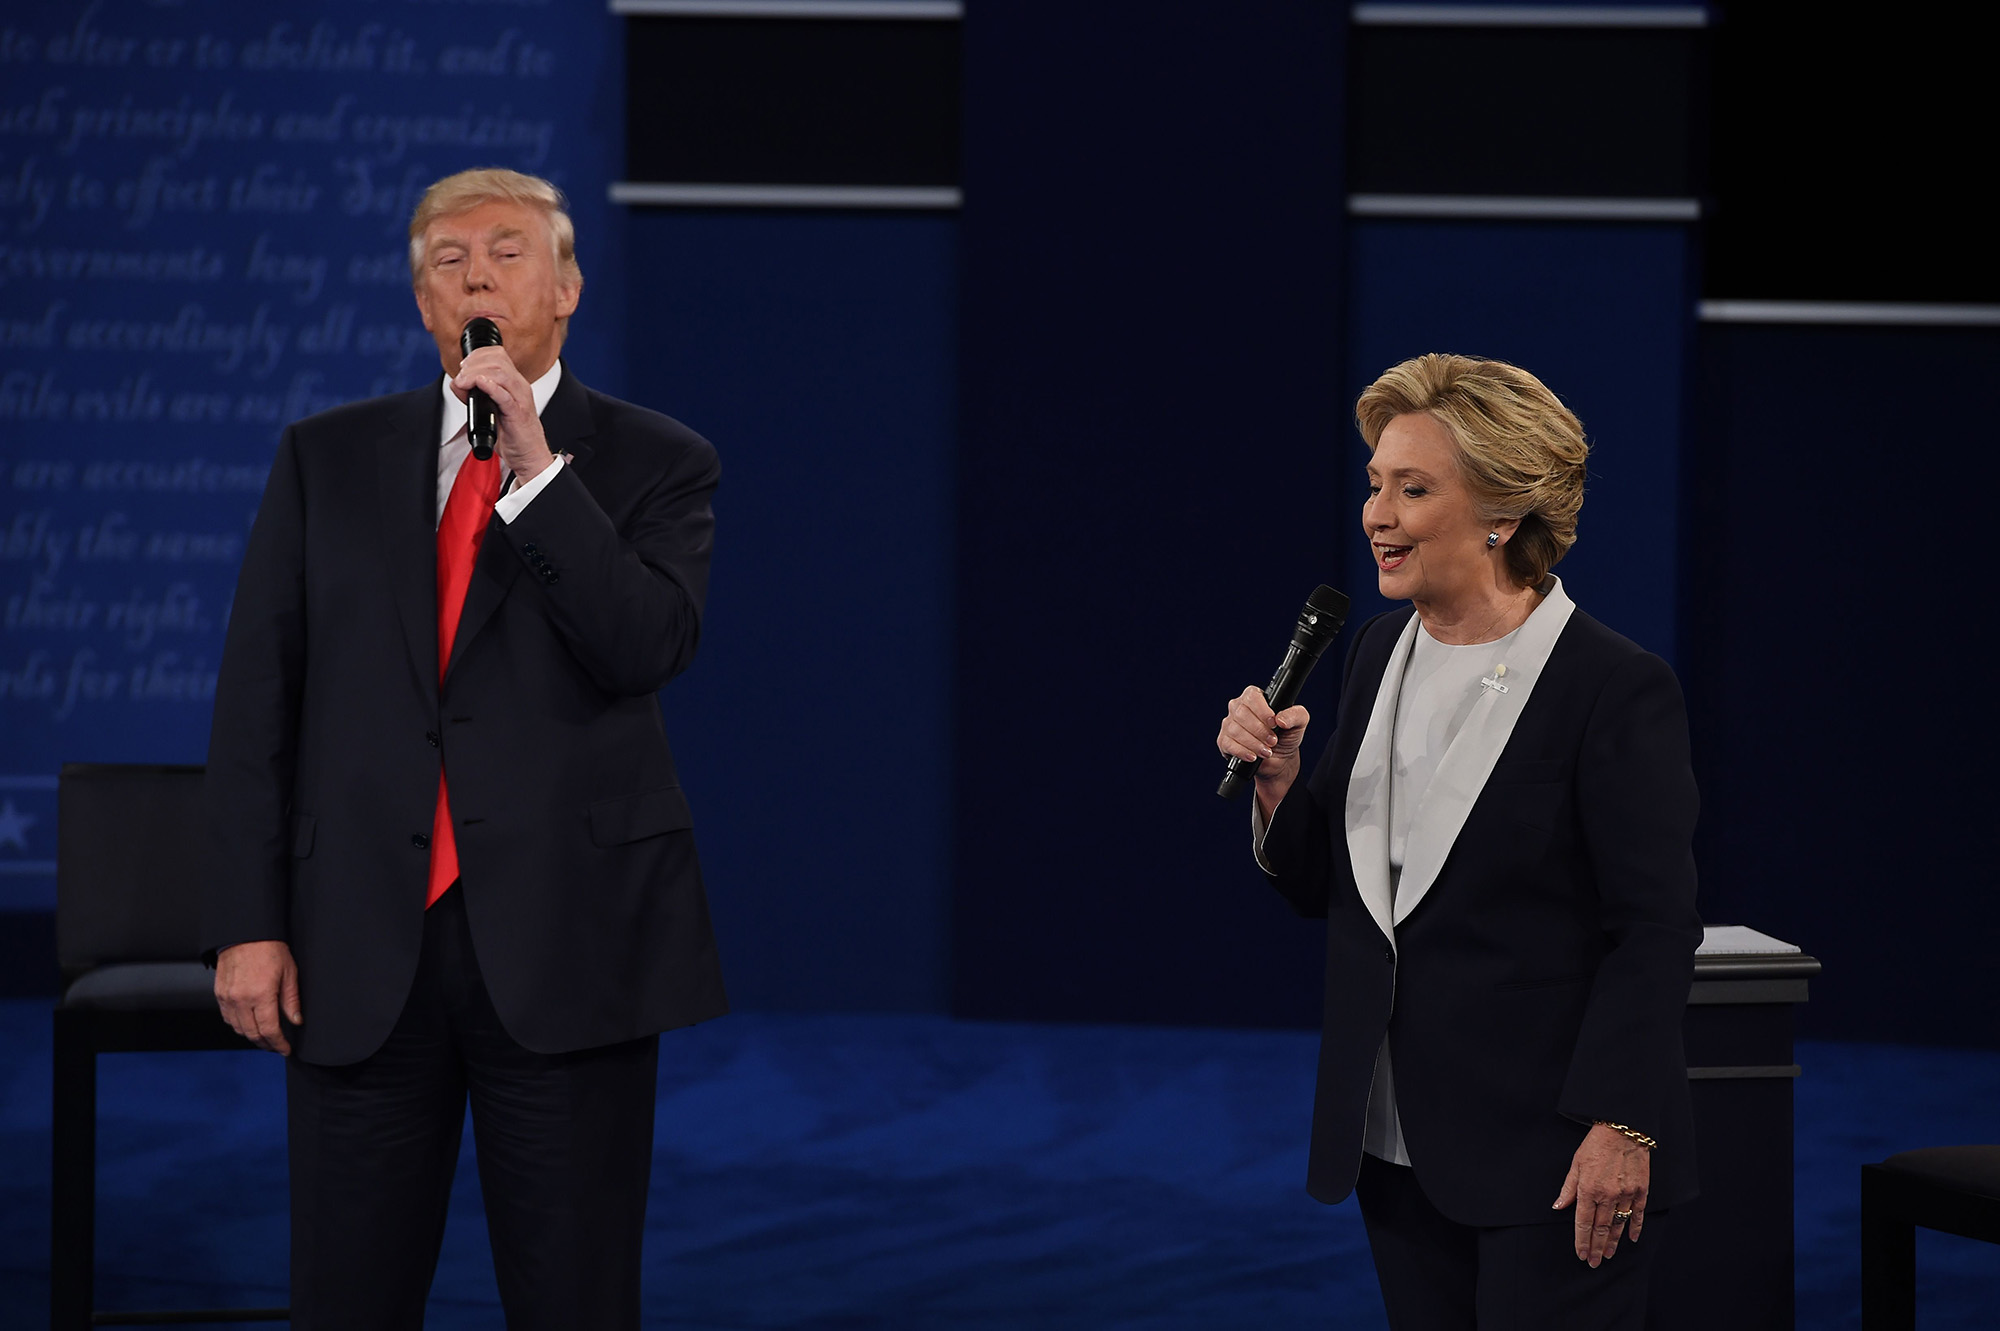 US Democratic presidential candidate Hillary Clinton and US Republican presidential candidate Donald Trump debate during the second presidential debate at Washington University in St. Louis, Missouri, on October 9, 2016. / AFP / Robyn Beck        (Photo credit should read ROBYN BECK/AFP/Getty Images)